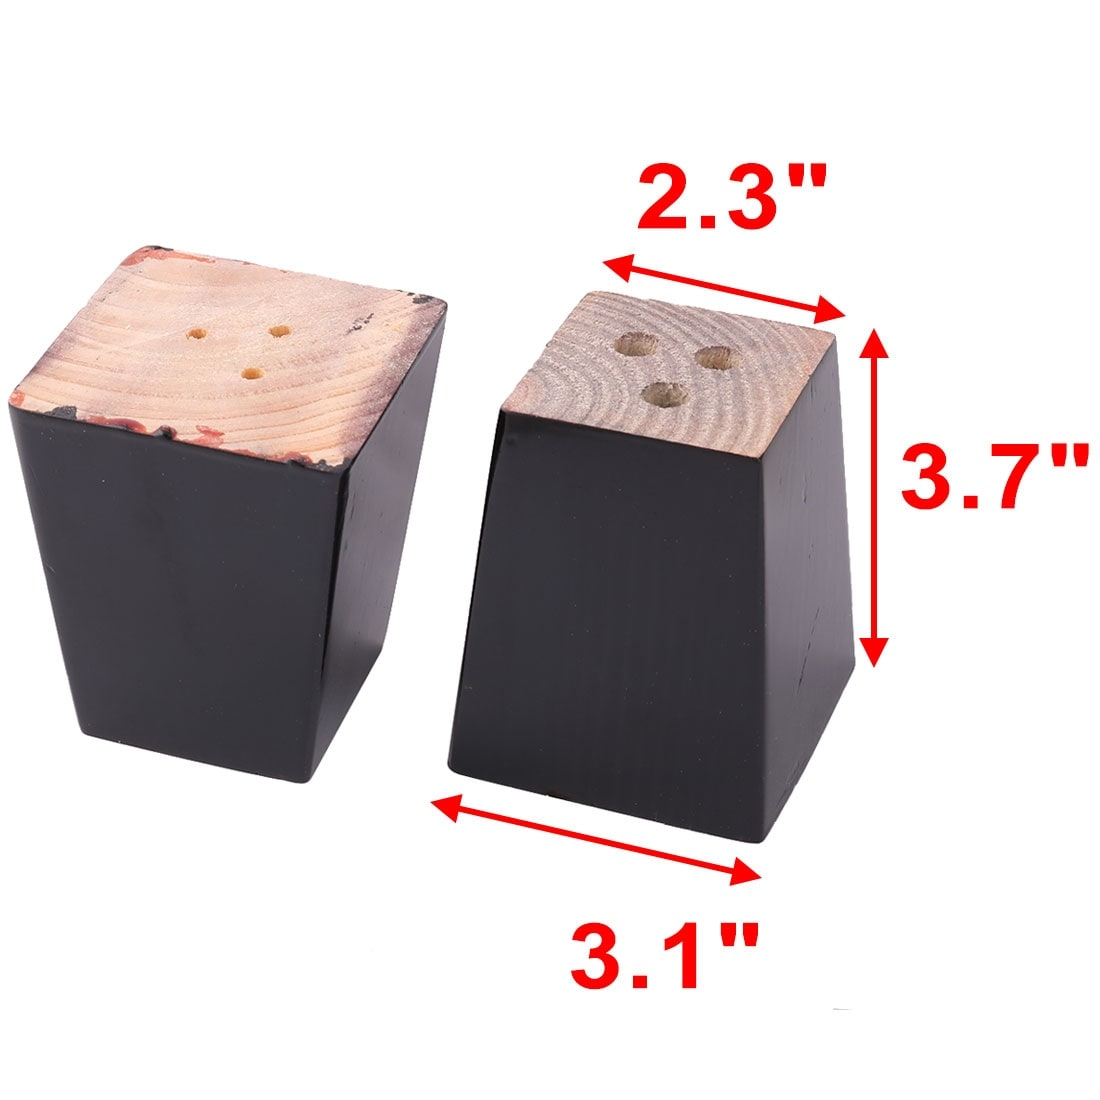 Shop Home Wooden Furniture Cabinet Chair Couch Sofa Legs Feet Replacement  Black 4pcs   Free Shipping Today   Overstock.com   18679718